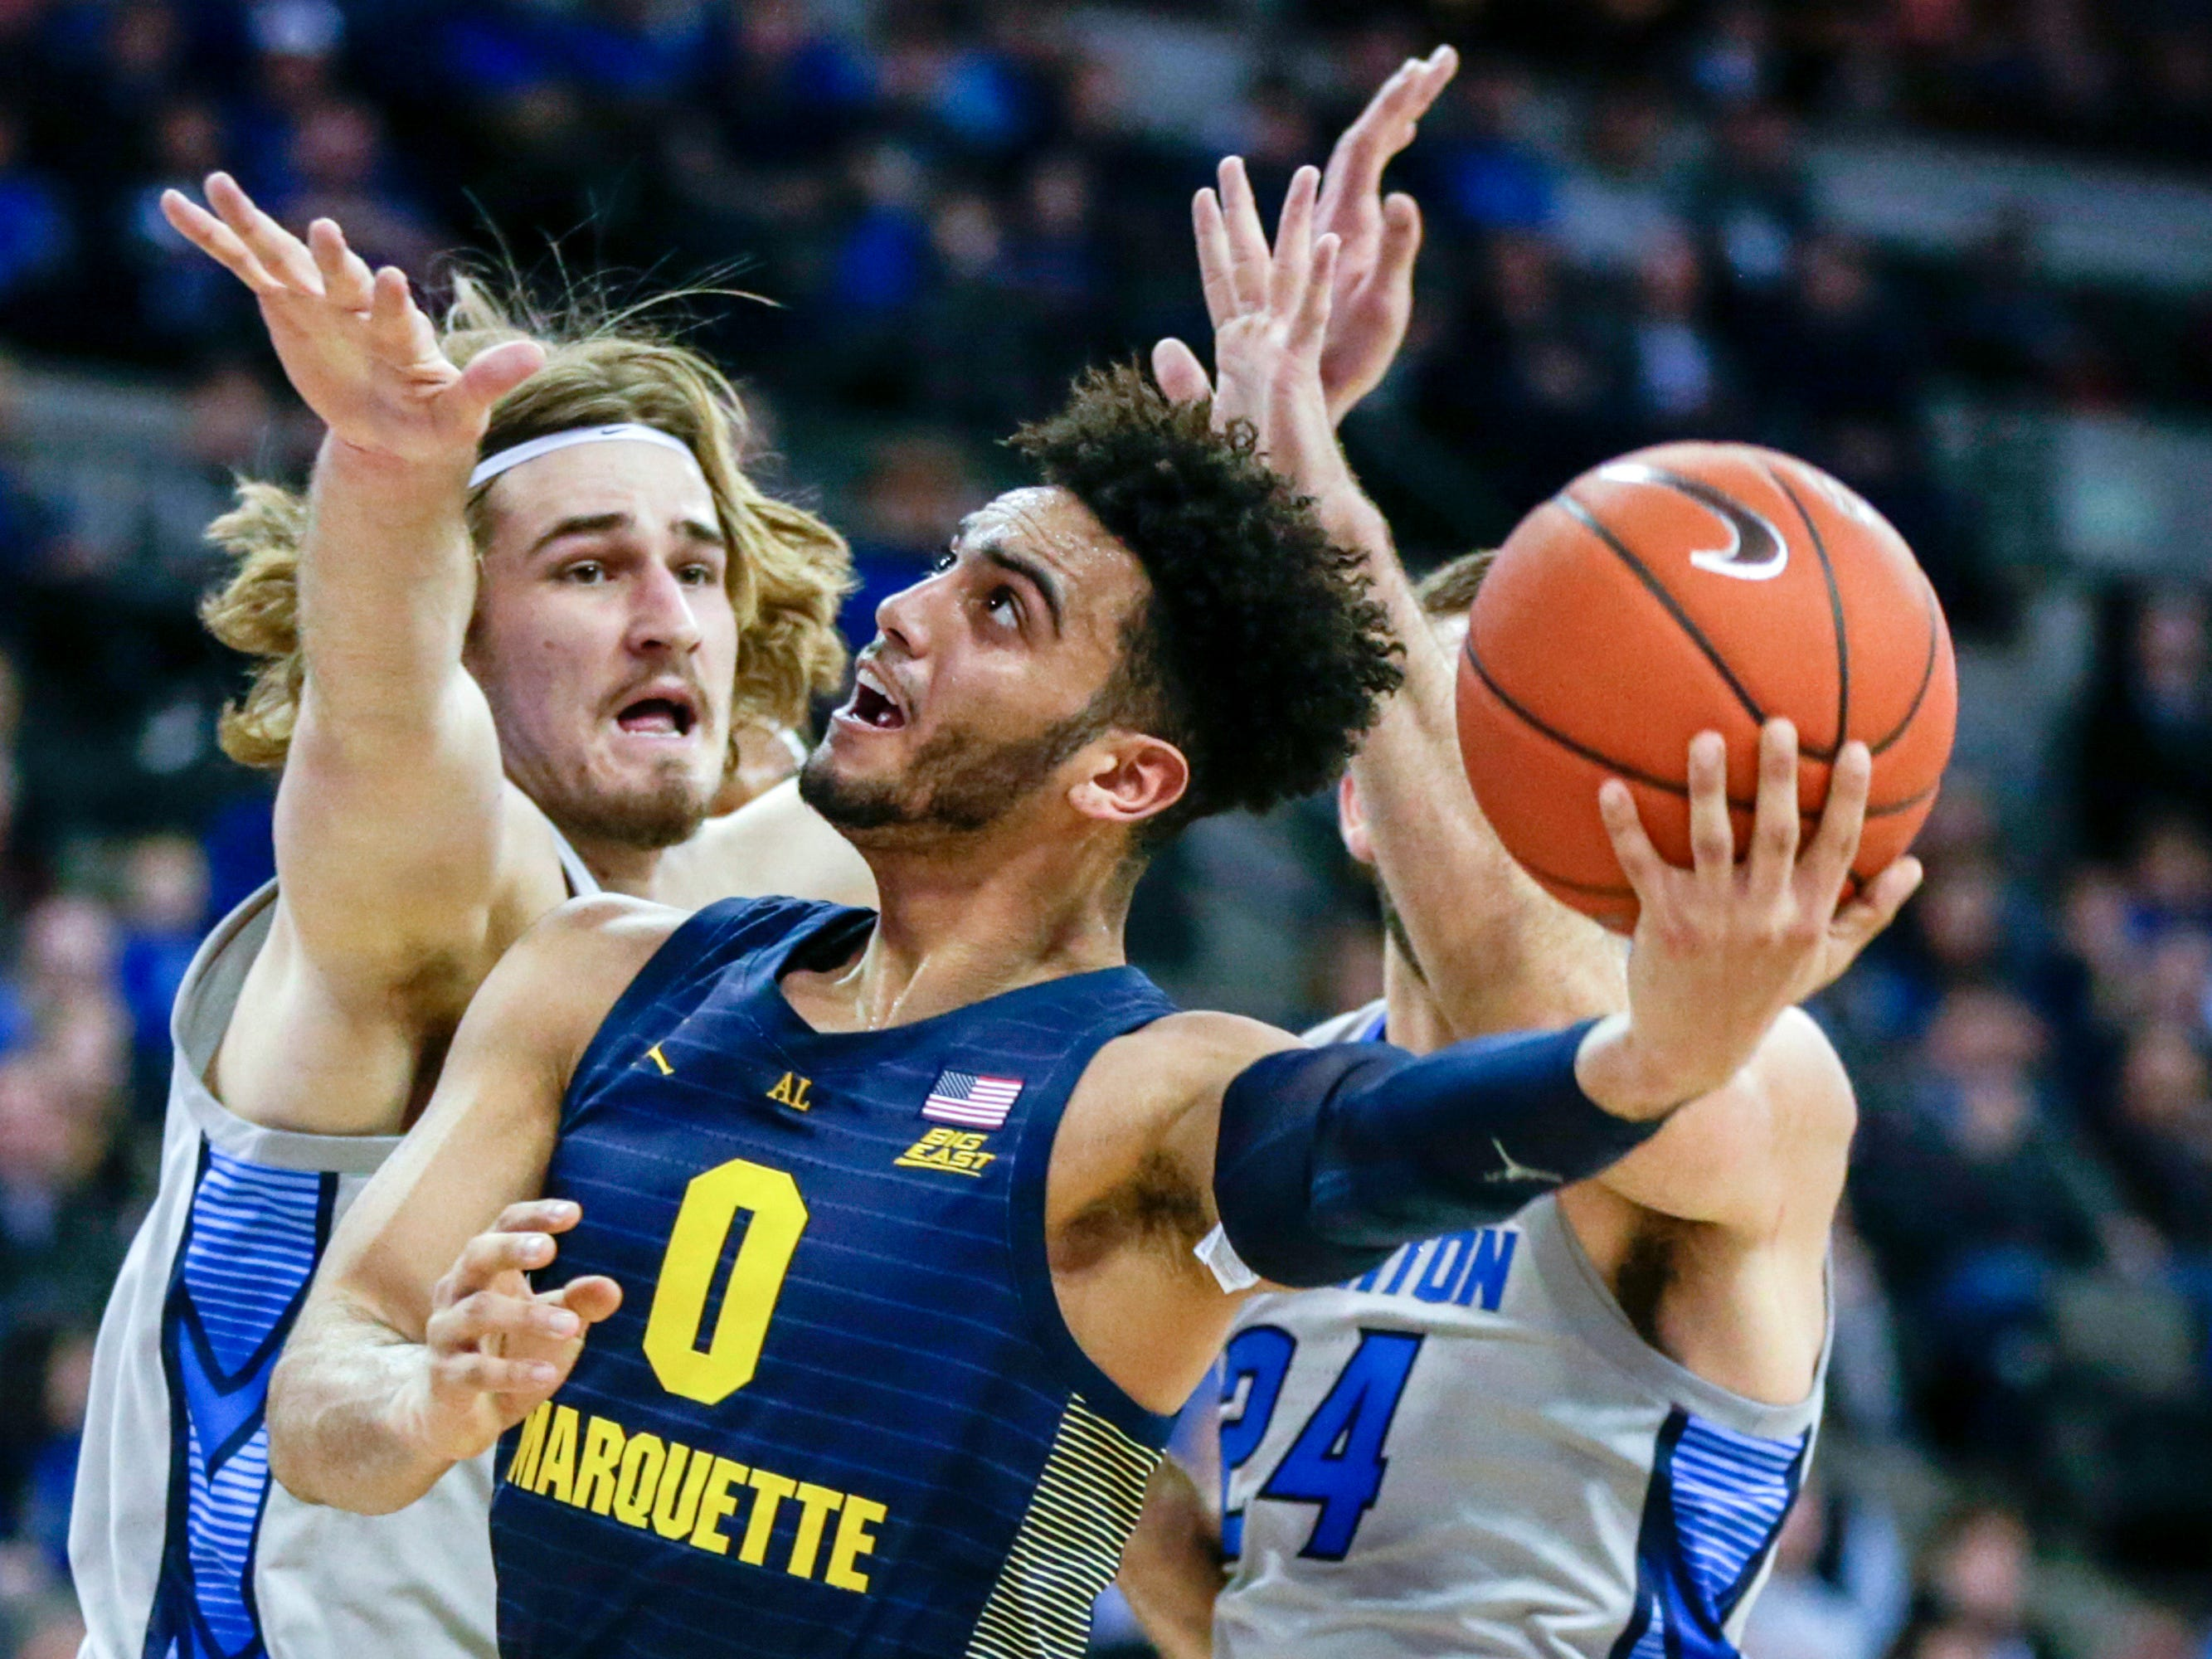 Marquette's Markus Howard goes to the basket in front of Creighton's SamsonFroling during the first half Wednesday night.